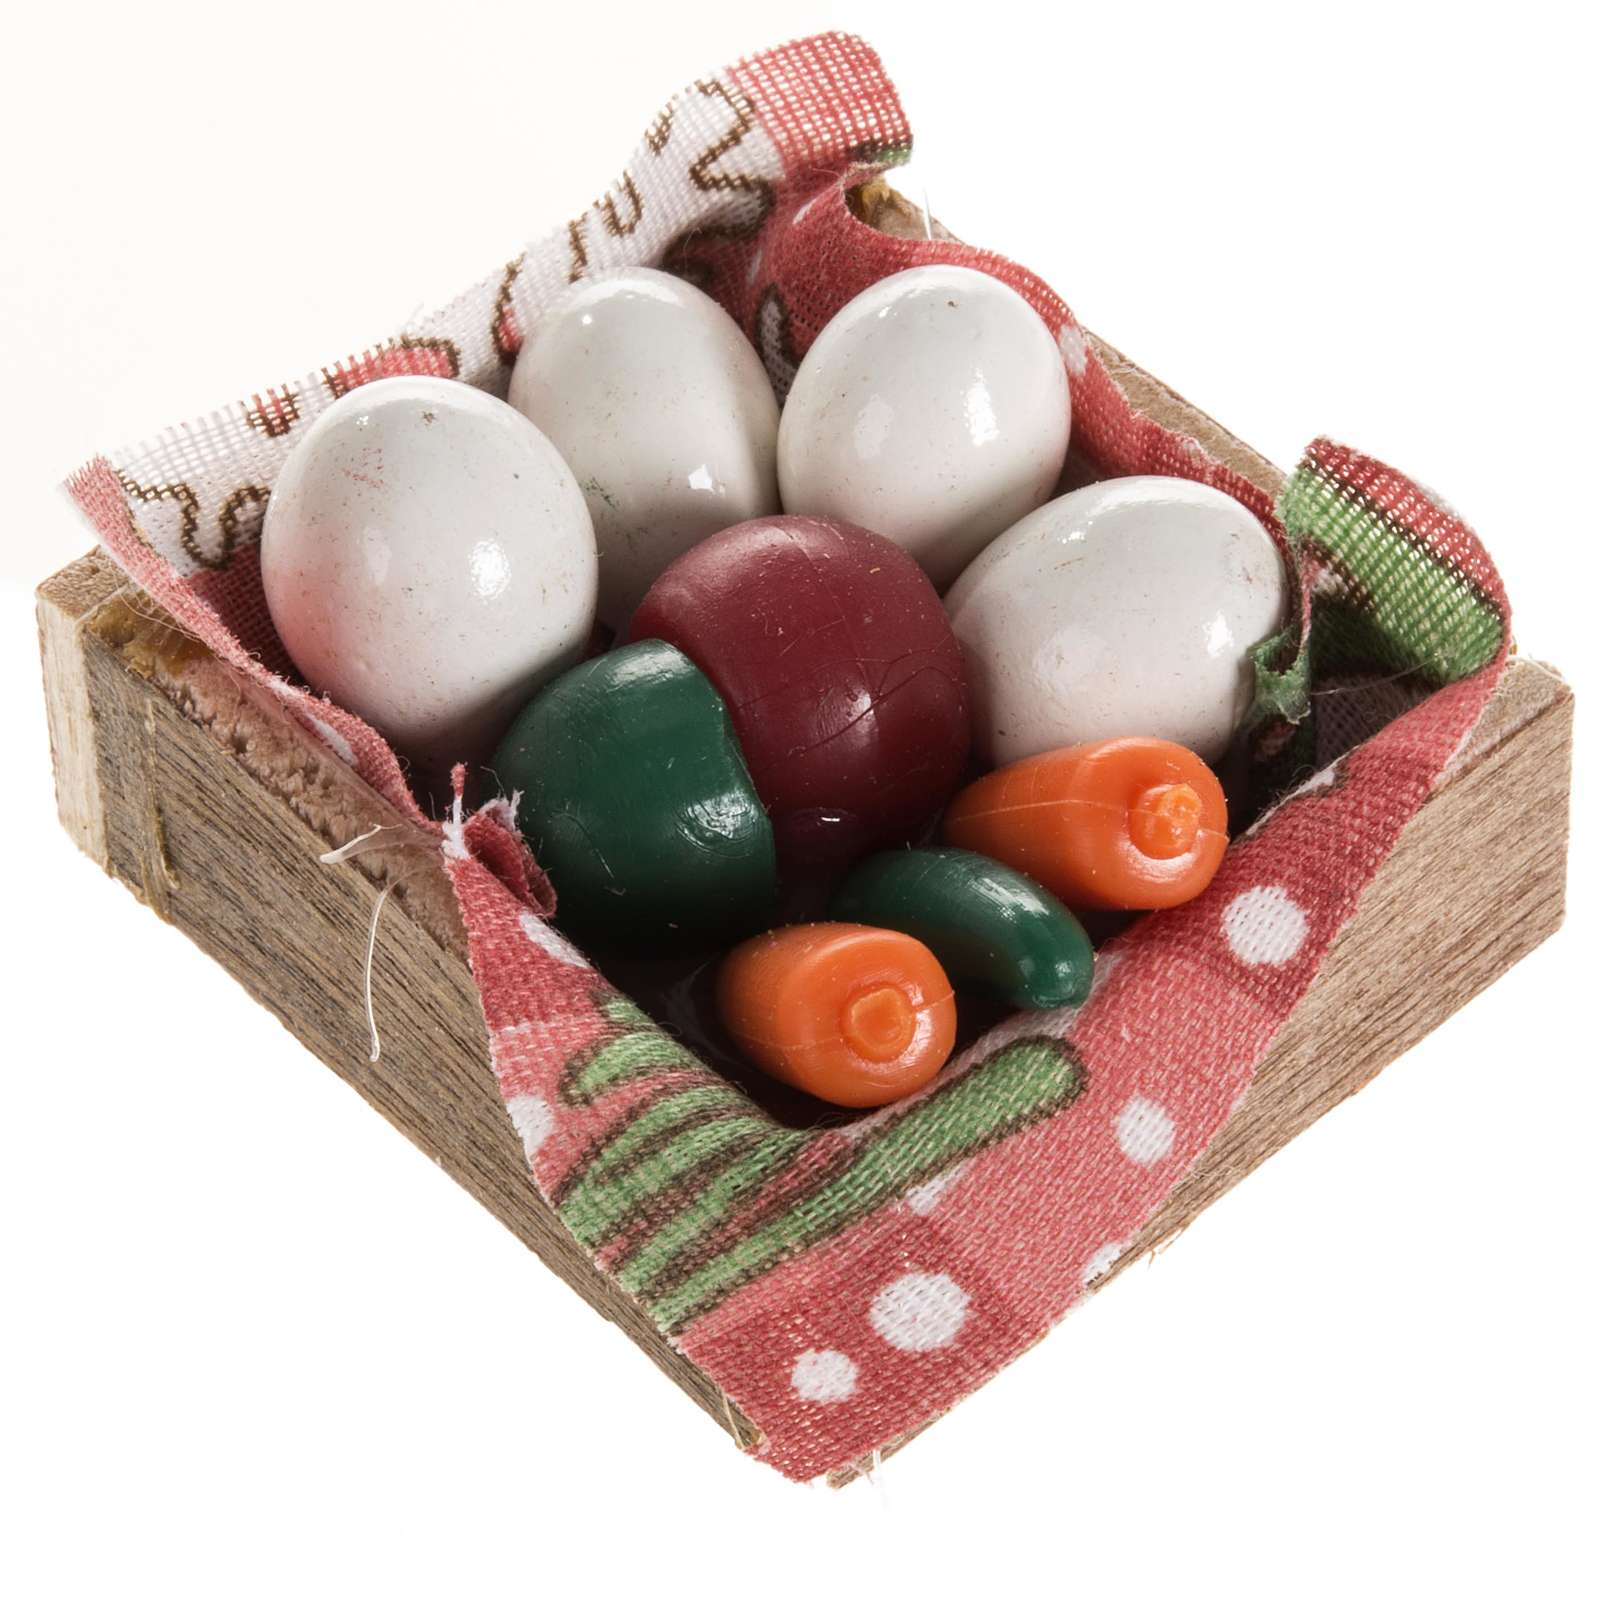 Nativity accessory, box with eggs and vegetables 4